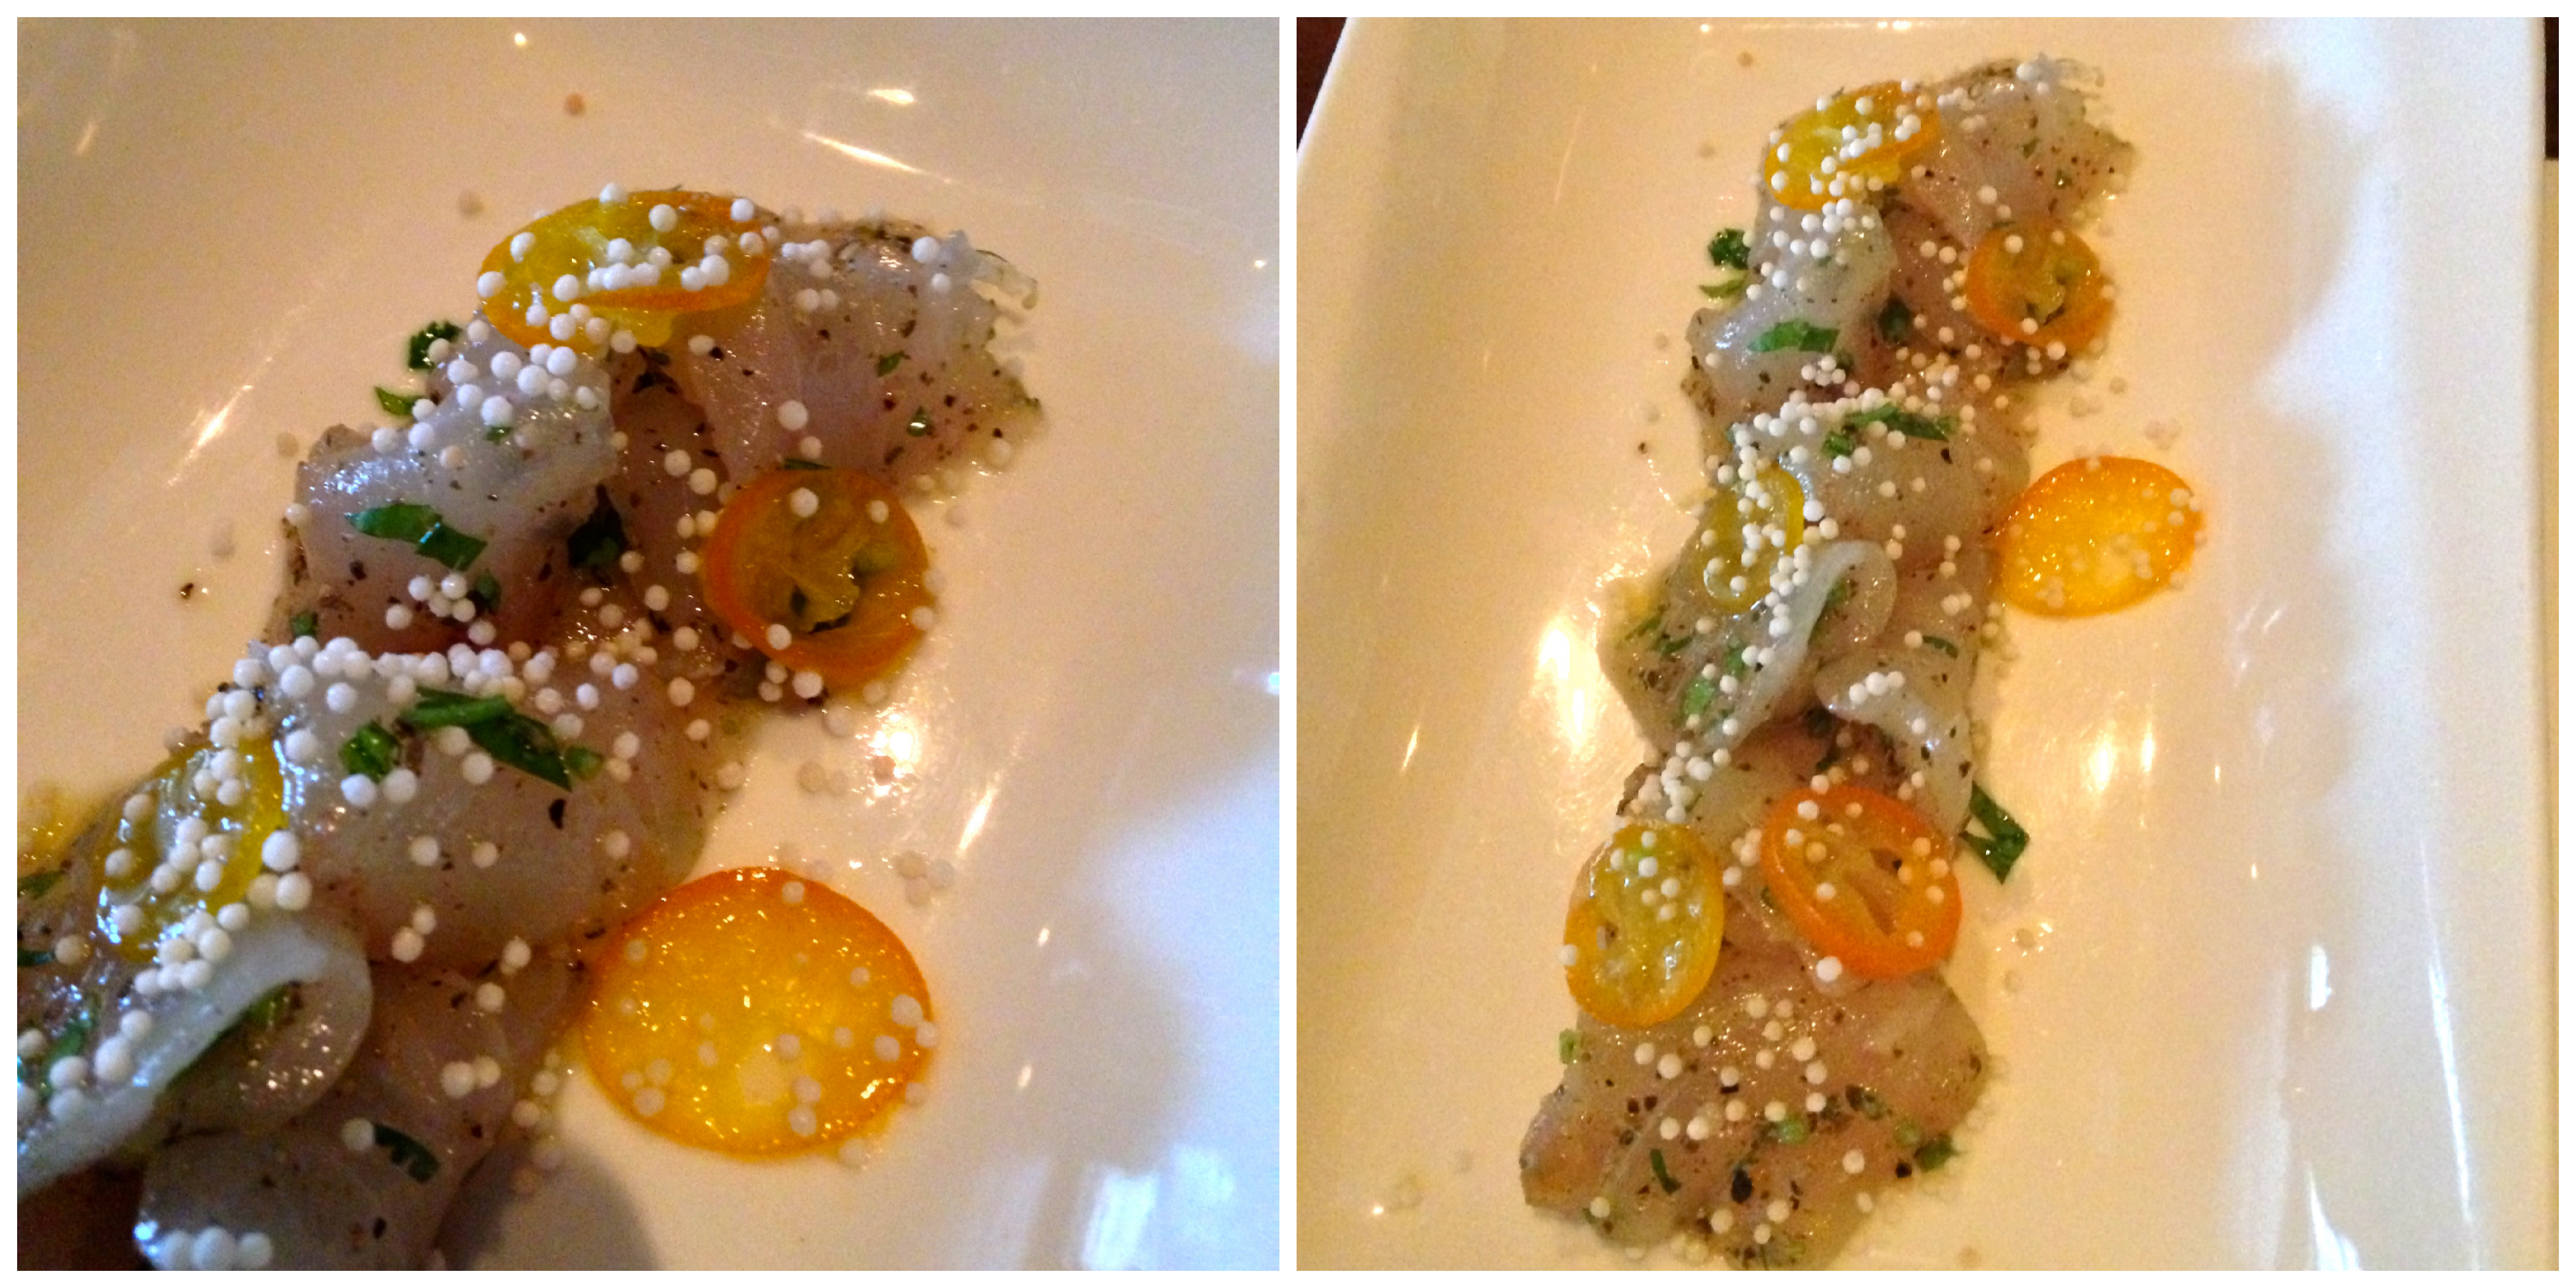 Striped Bass Crudo topped with peppercorns and kumquats